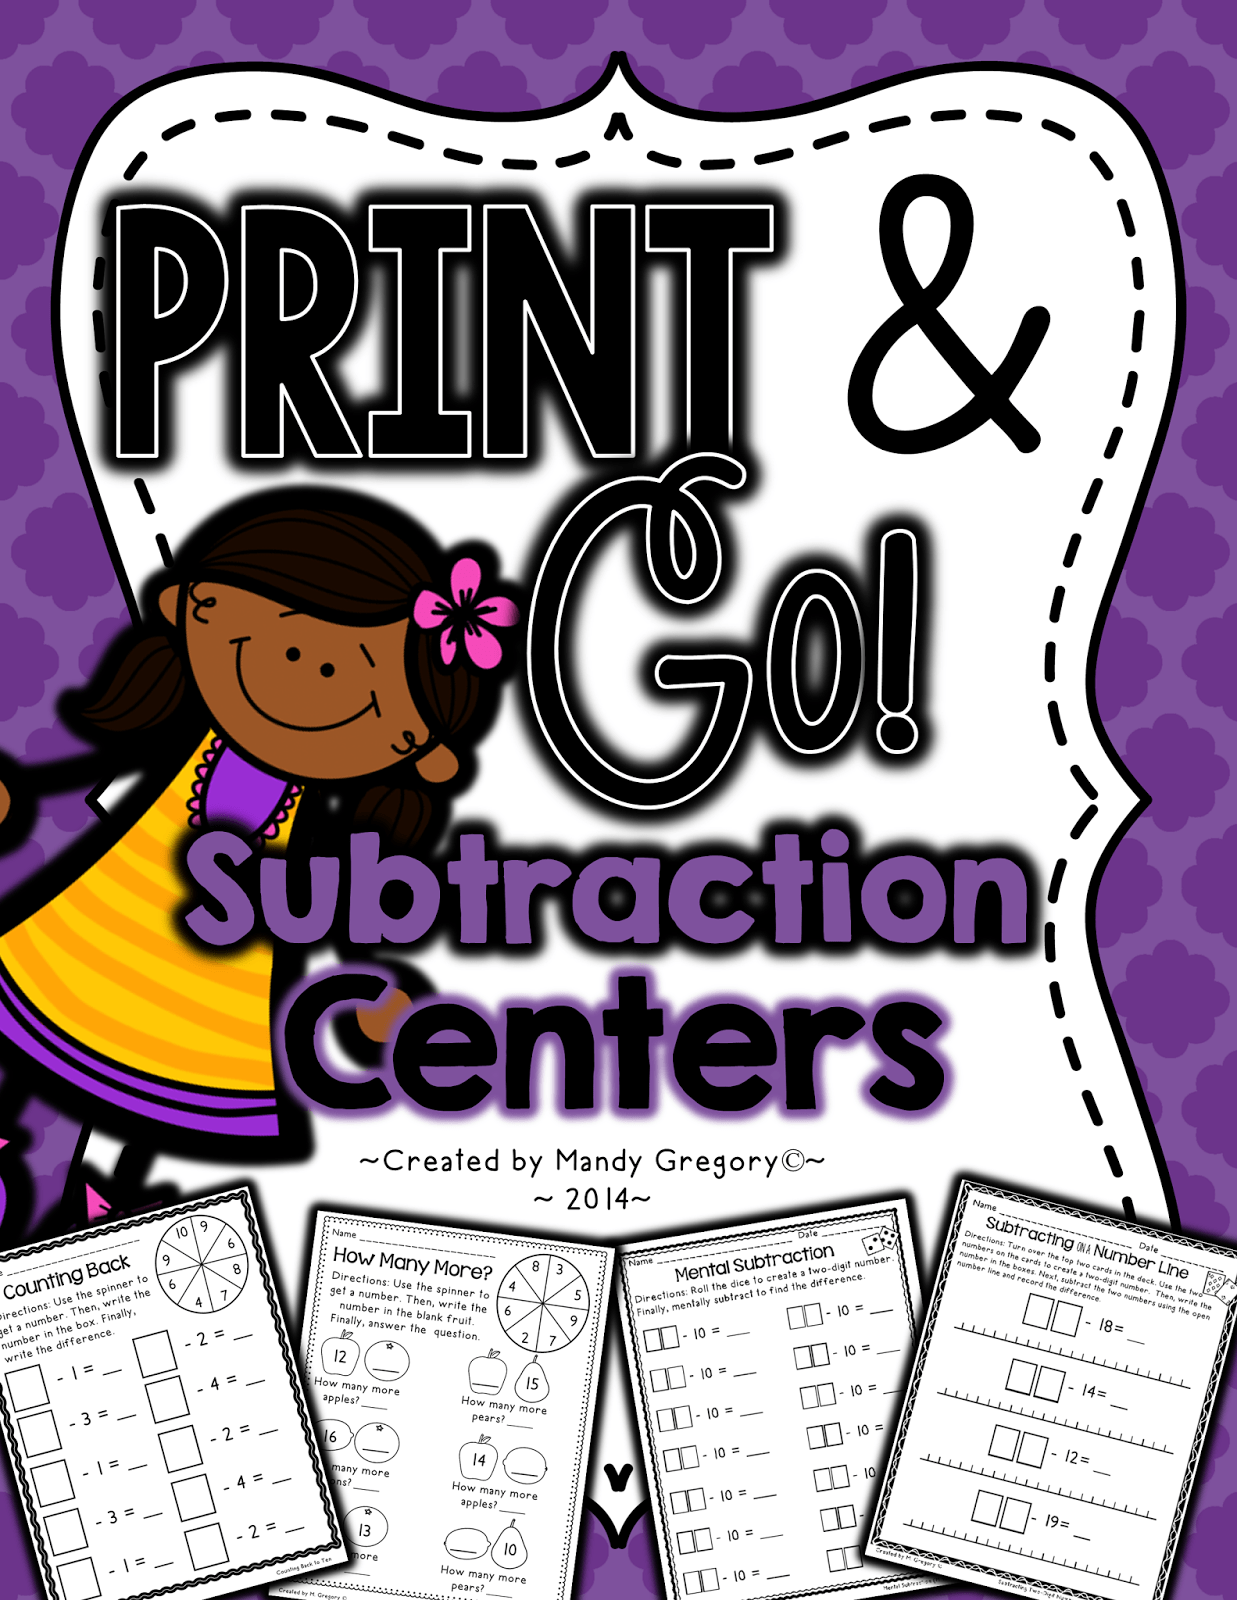 https://www.teacherspayteachers.com/Product/Subtraction-Print-and-Go-Centers-1647123